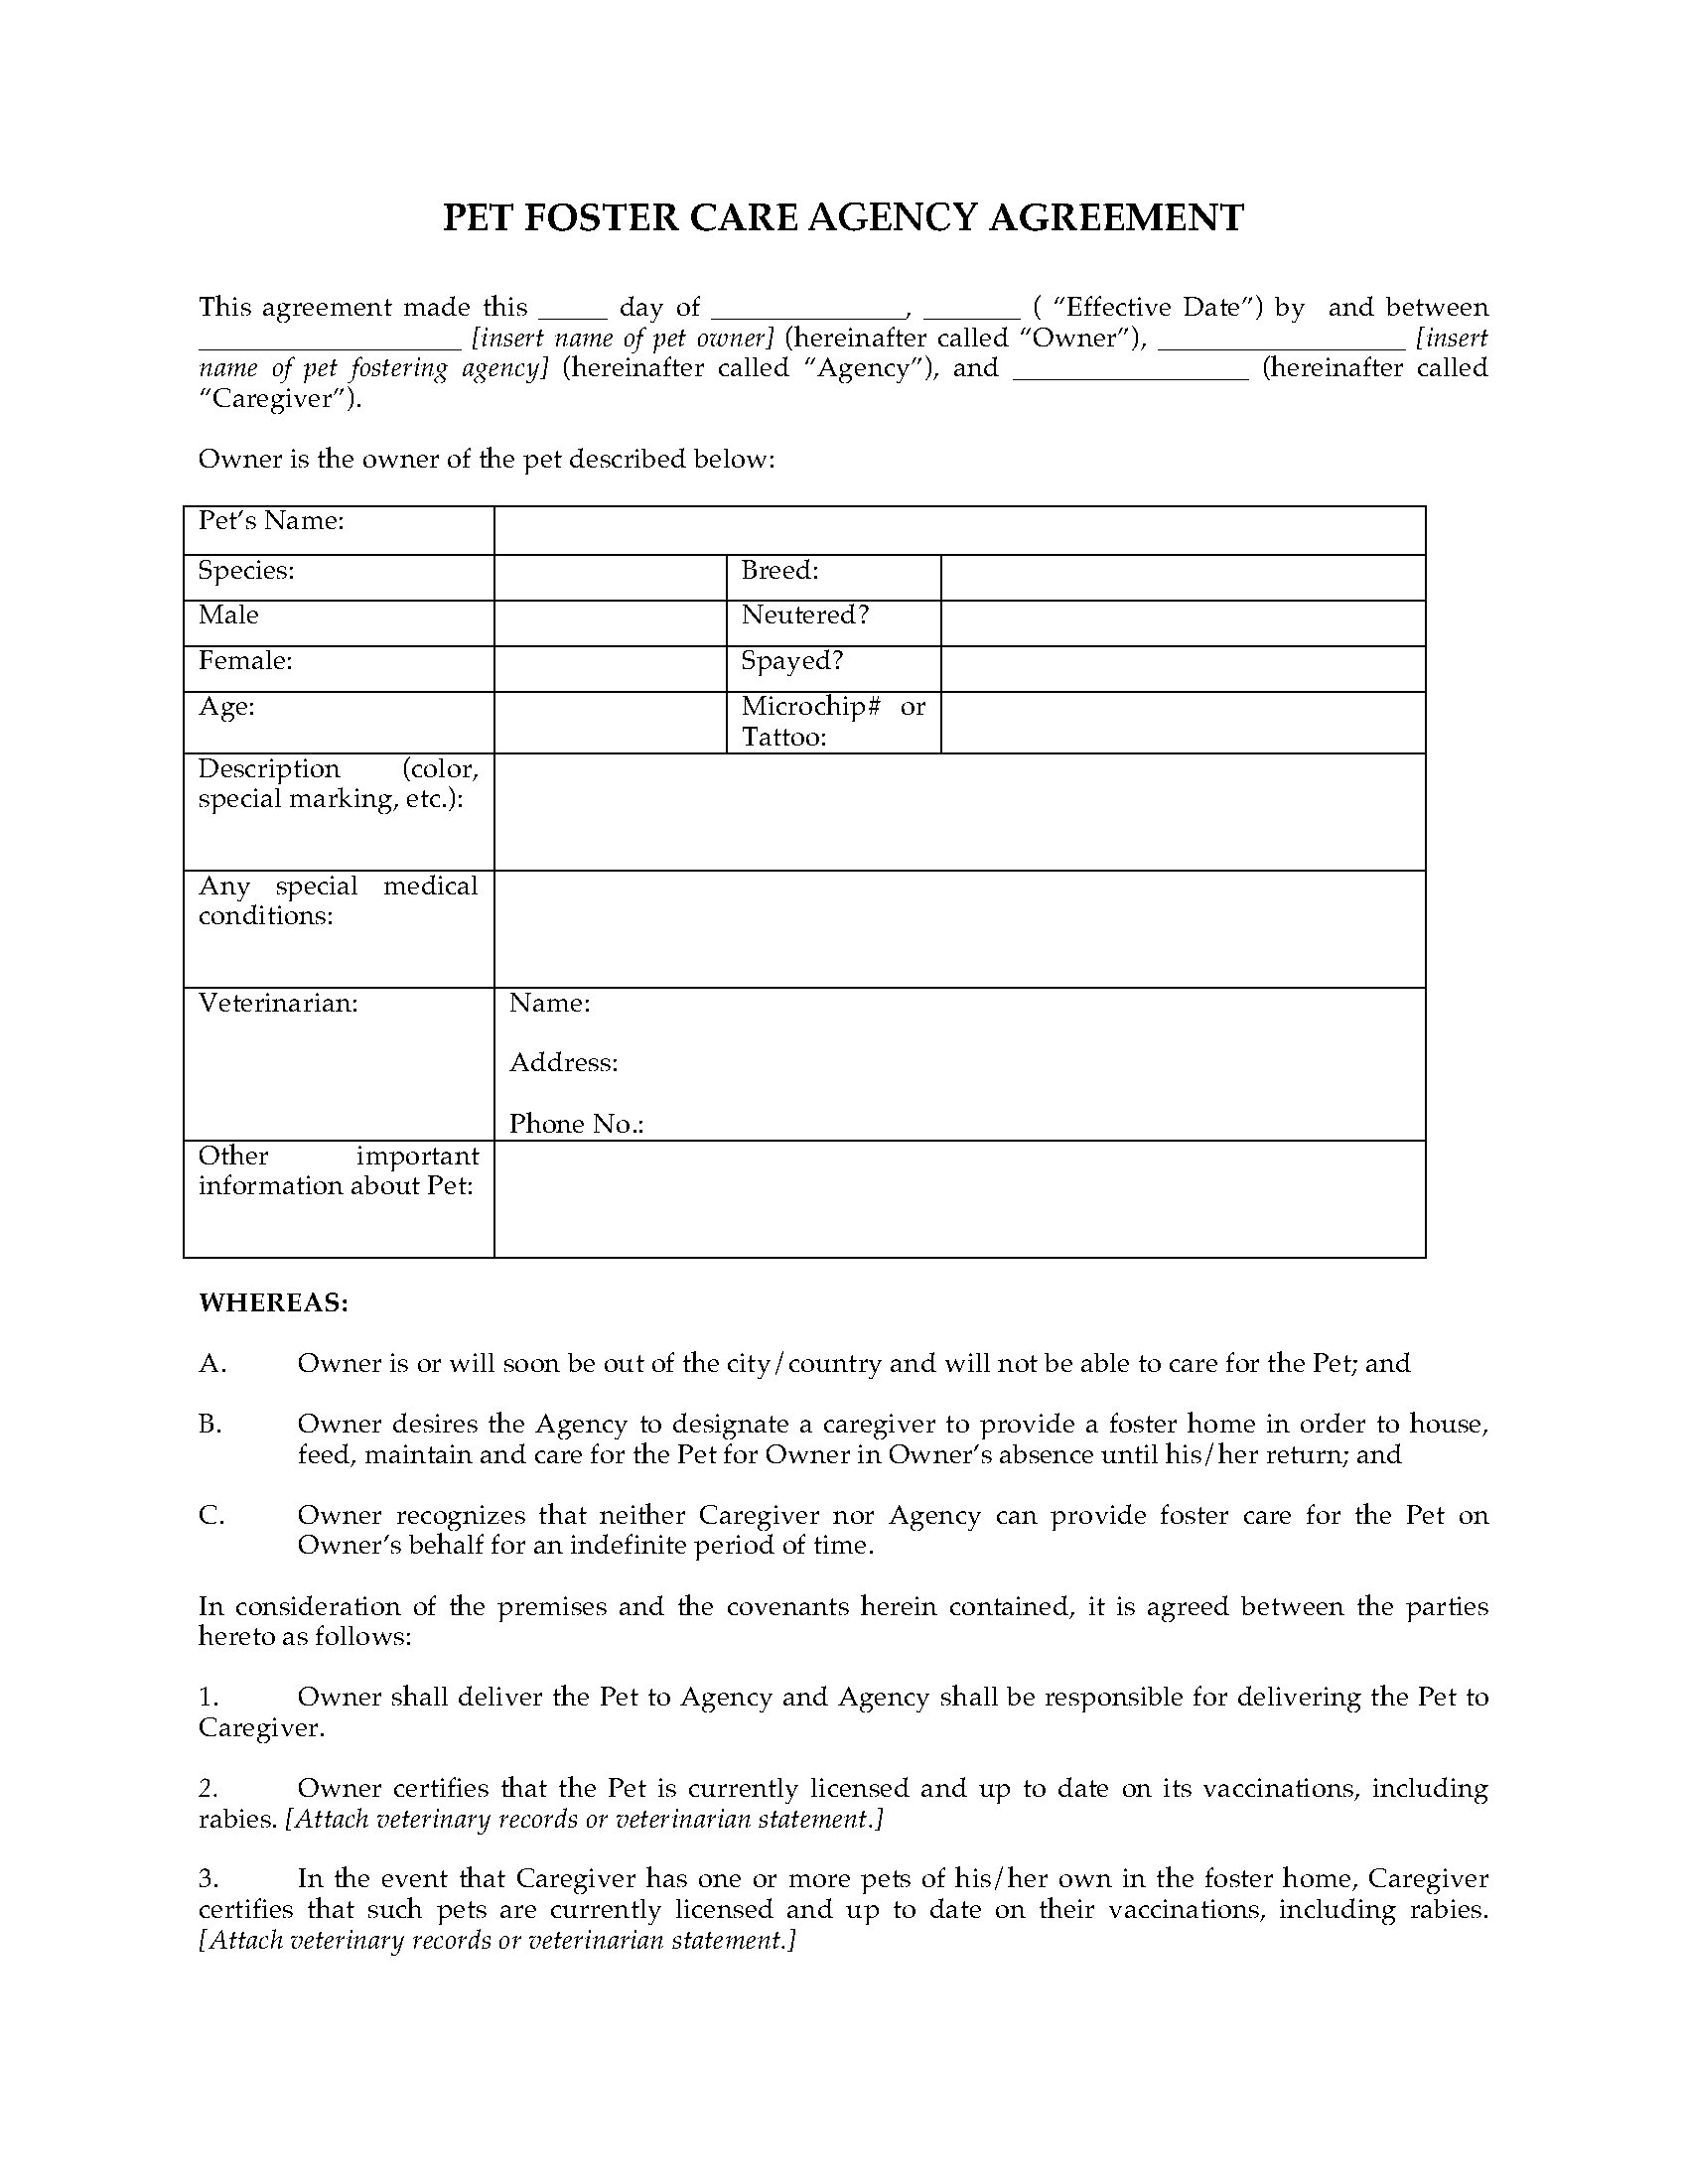 Pet Foster Care Agreement Legal Forms And Business Templates